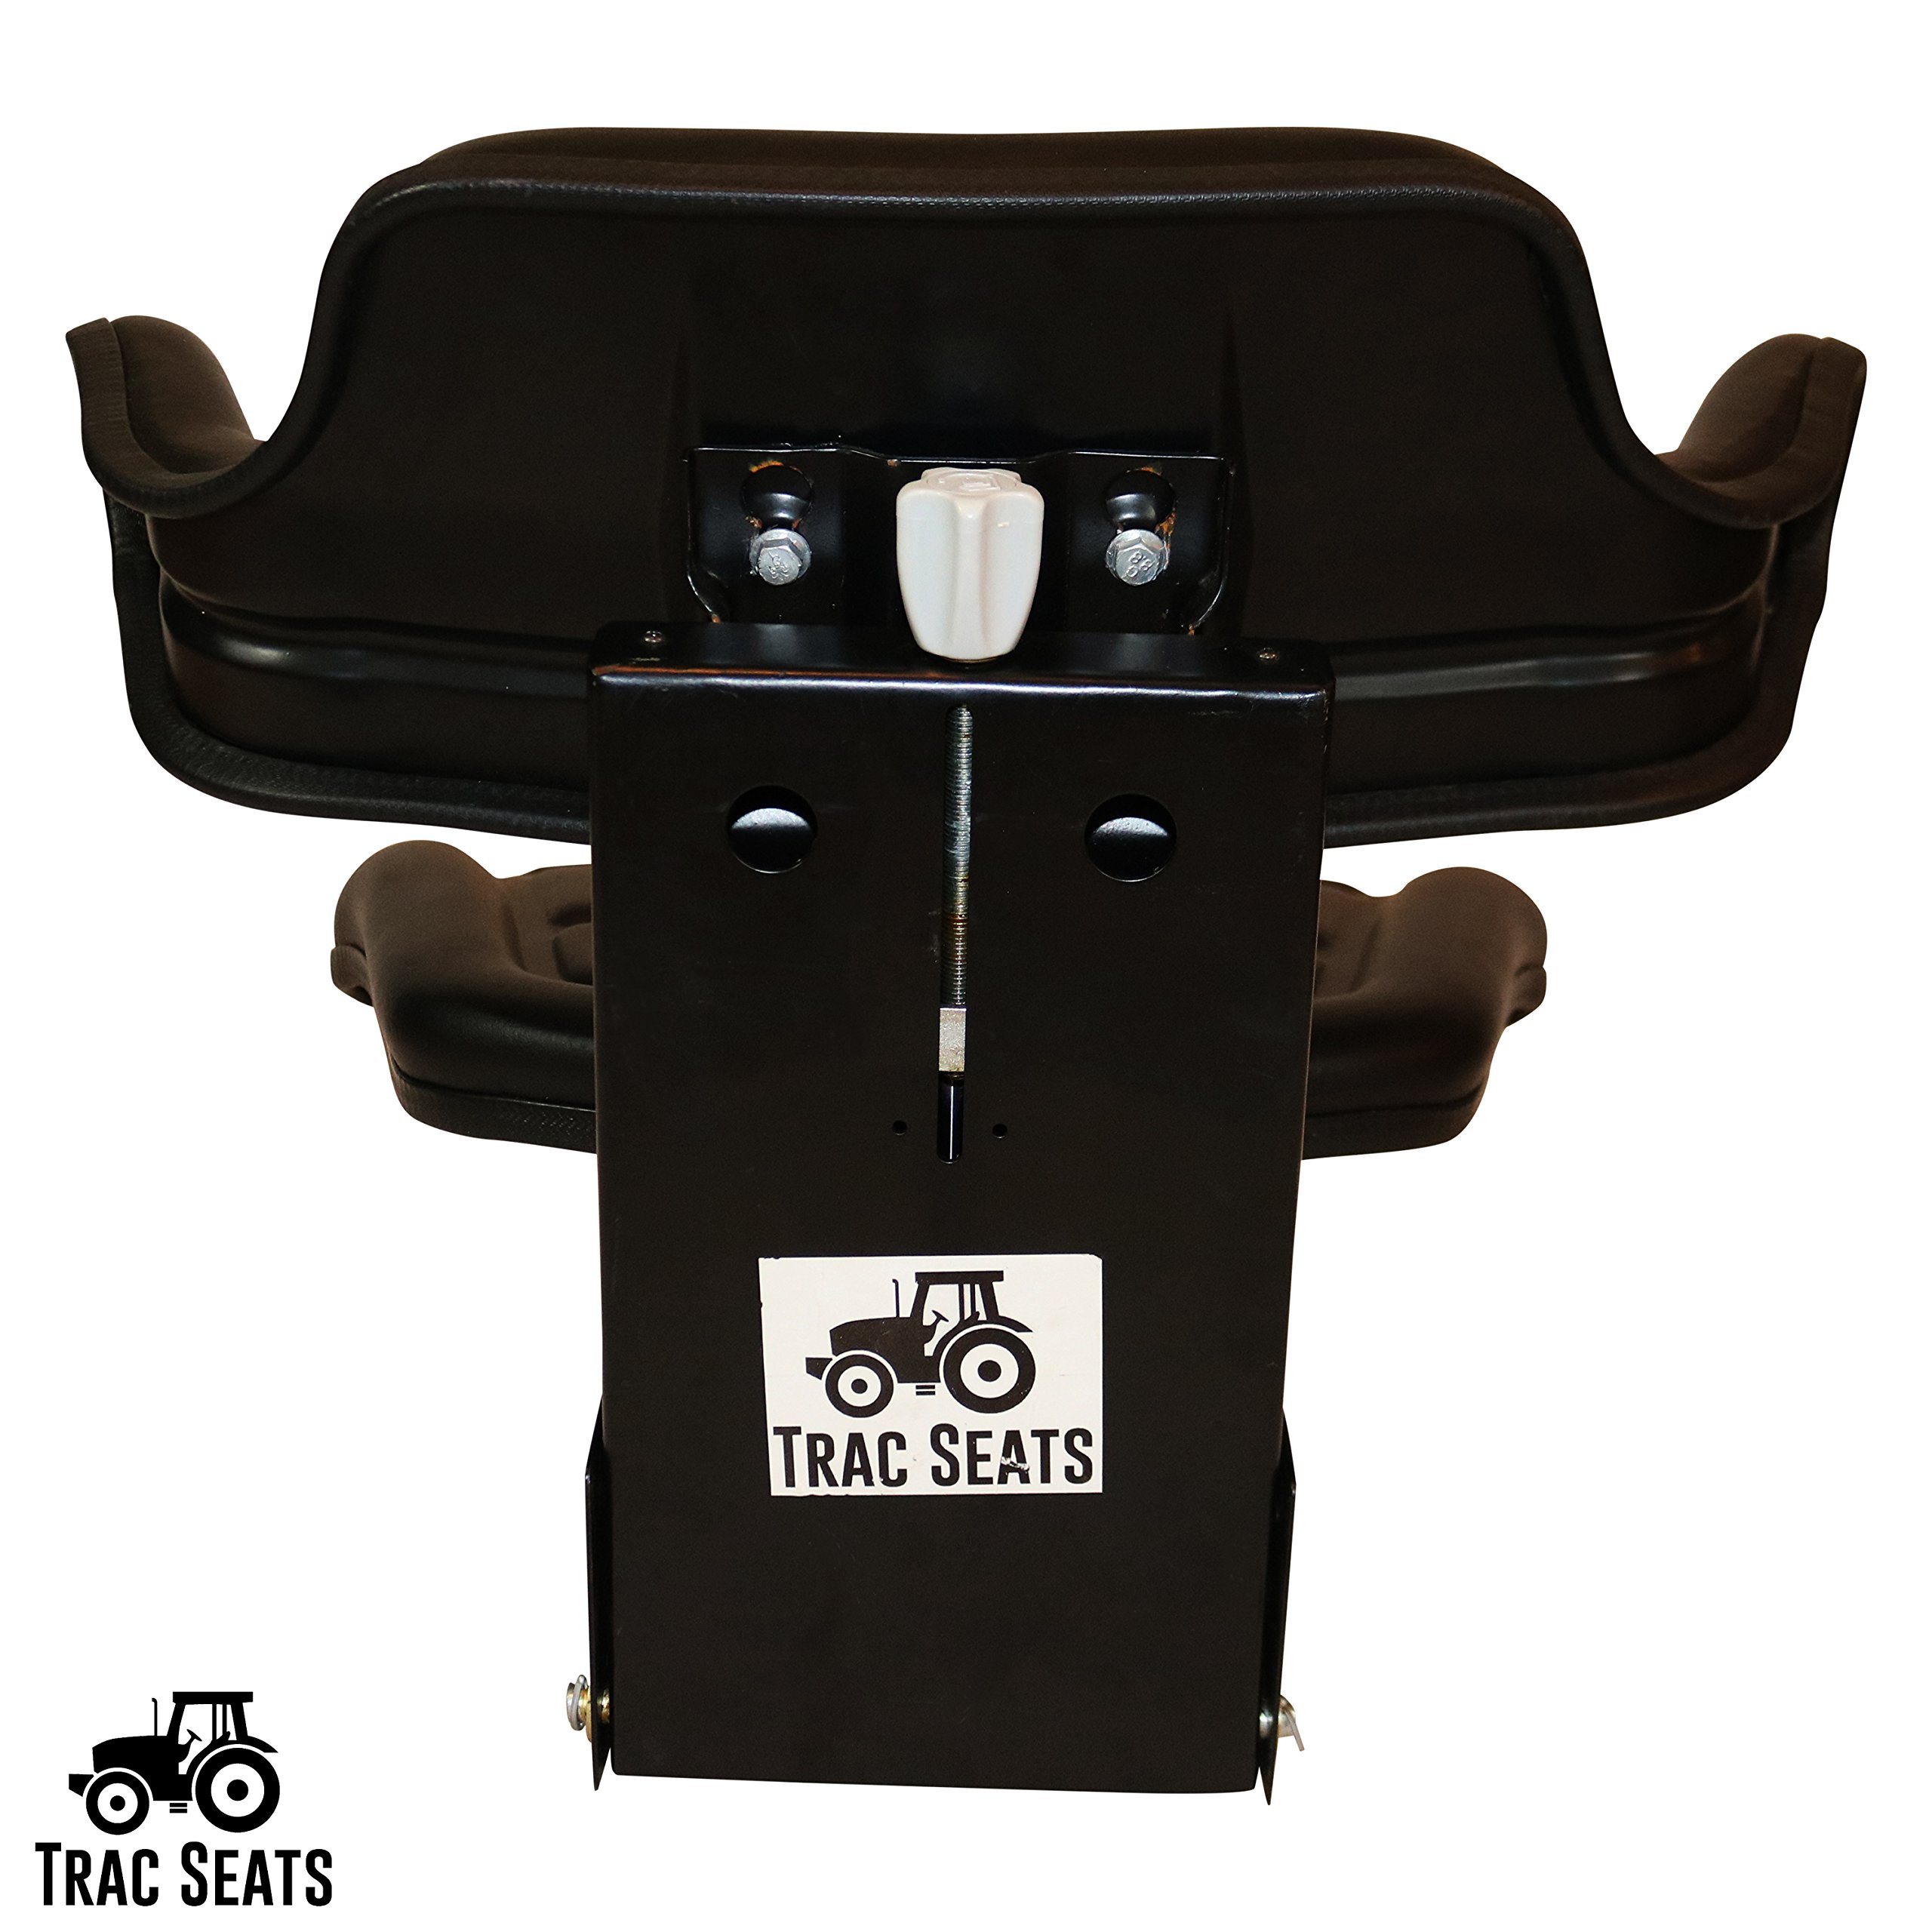 Black Waffle Style TRAC SEATS Brand Tractor Suspension SEAT with TILT FITS Massey Ferguson 231 234 255 265 270 274 275 285 (Fast Ship - Delivers in 1-4 Business Days) by TRAC SEATS